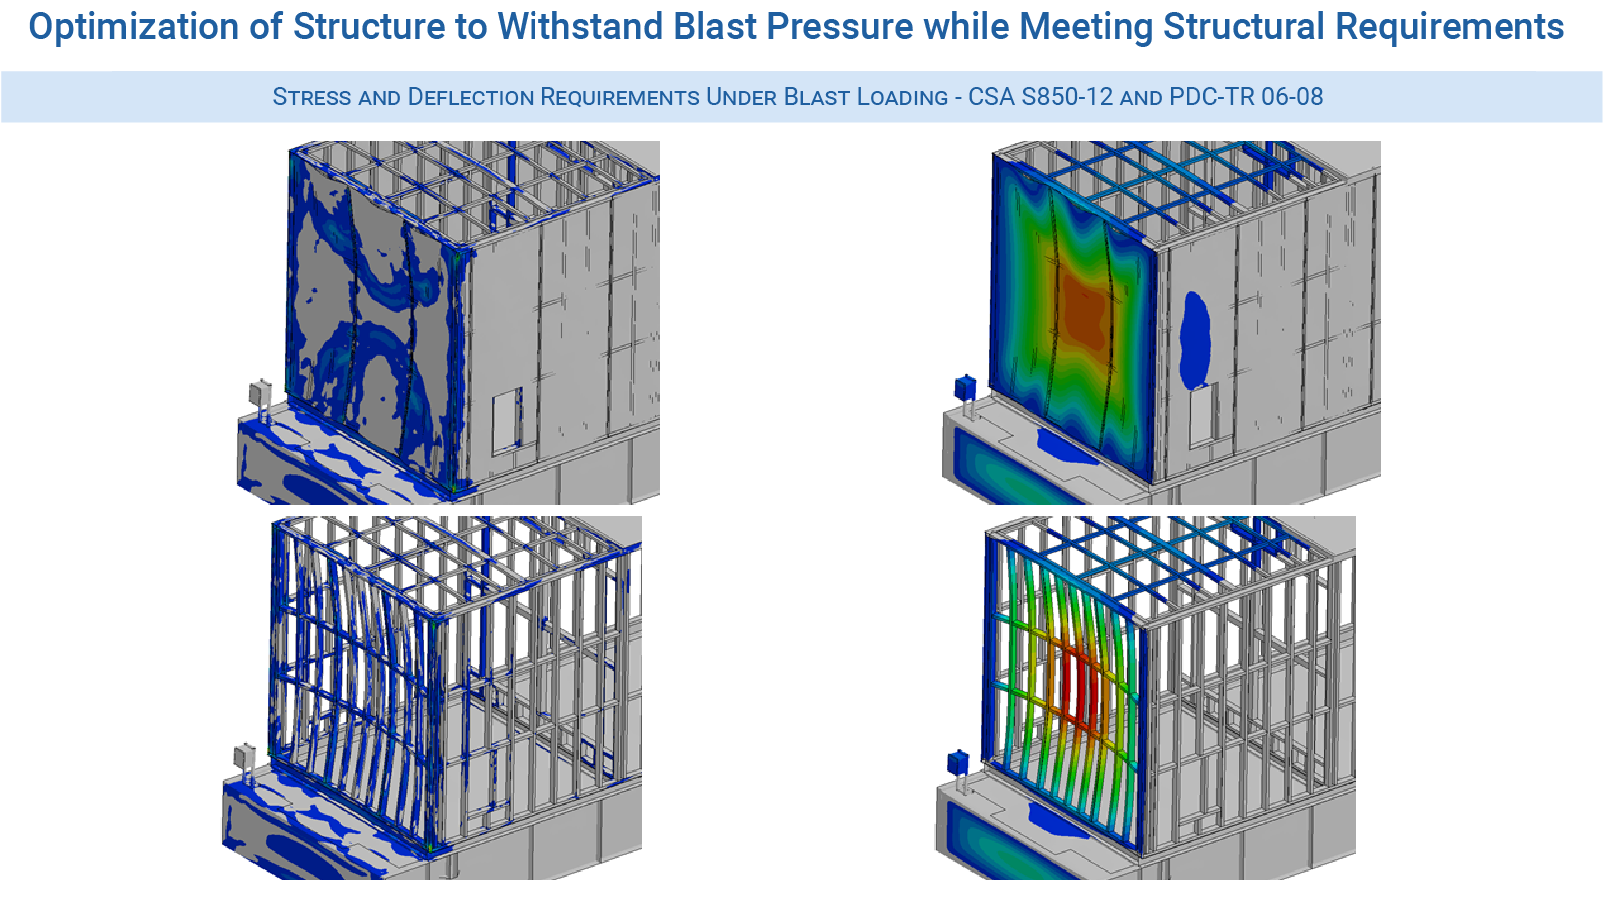 LS-DYNA Optimization for Protective Design against Blast Loading